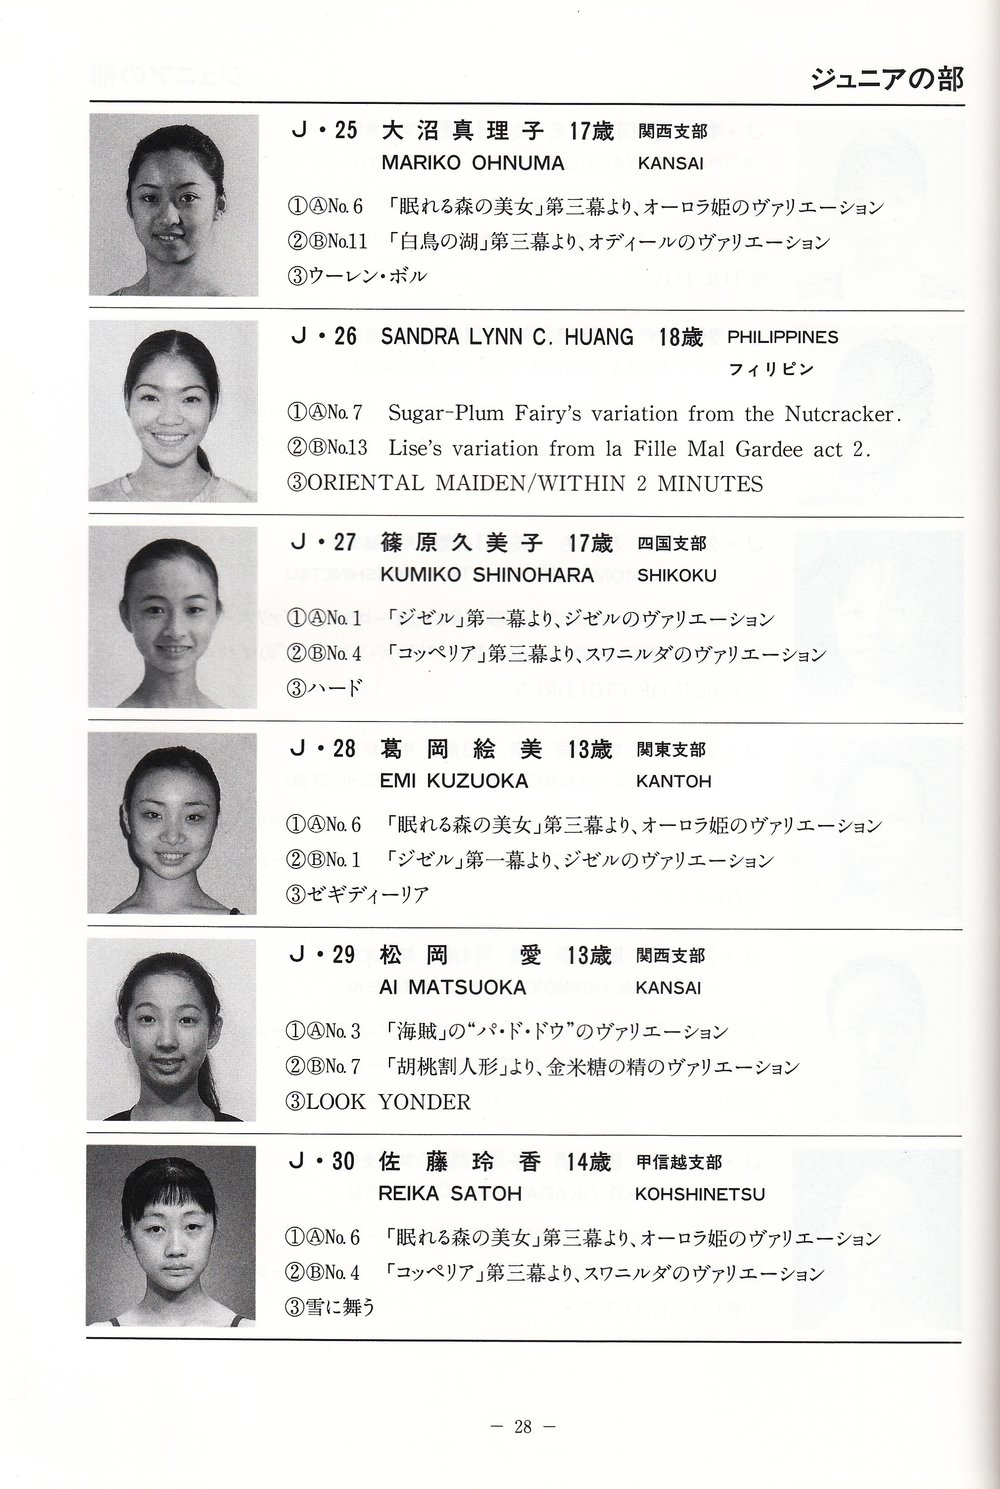 Page from the souvenir program shows Ballet Manila's junior competitor Sandra Lynn Huang. From the Ballet Manila Archives collection